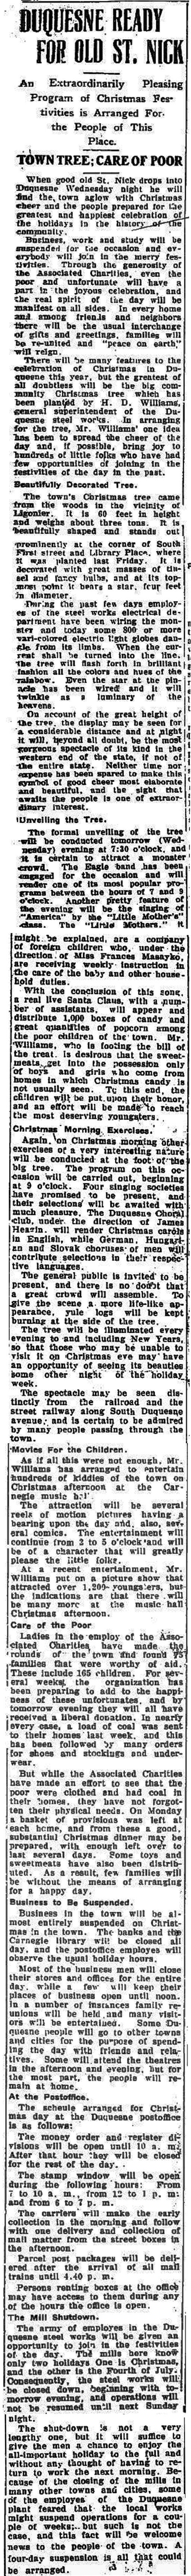 Christmas in Duquesne 100 Years Ago